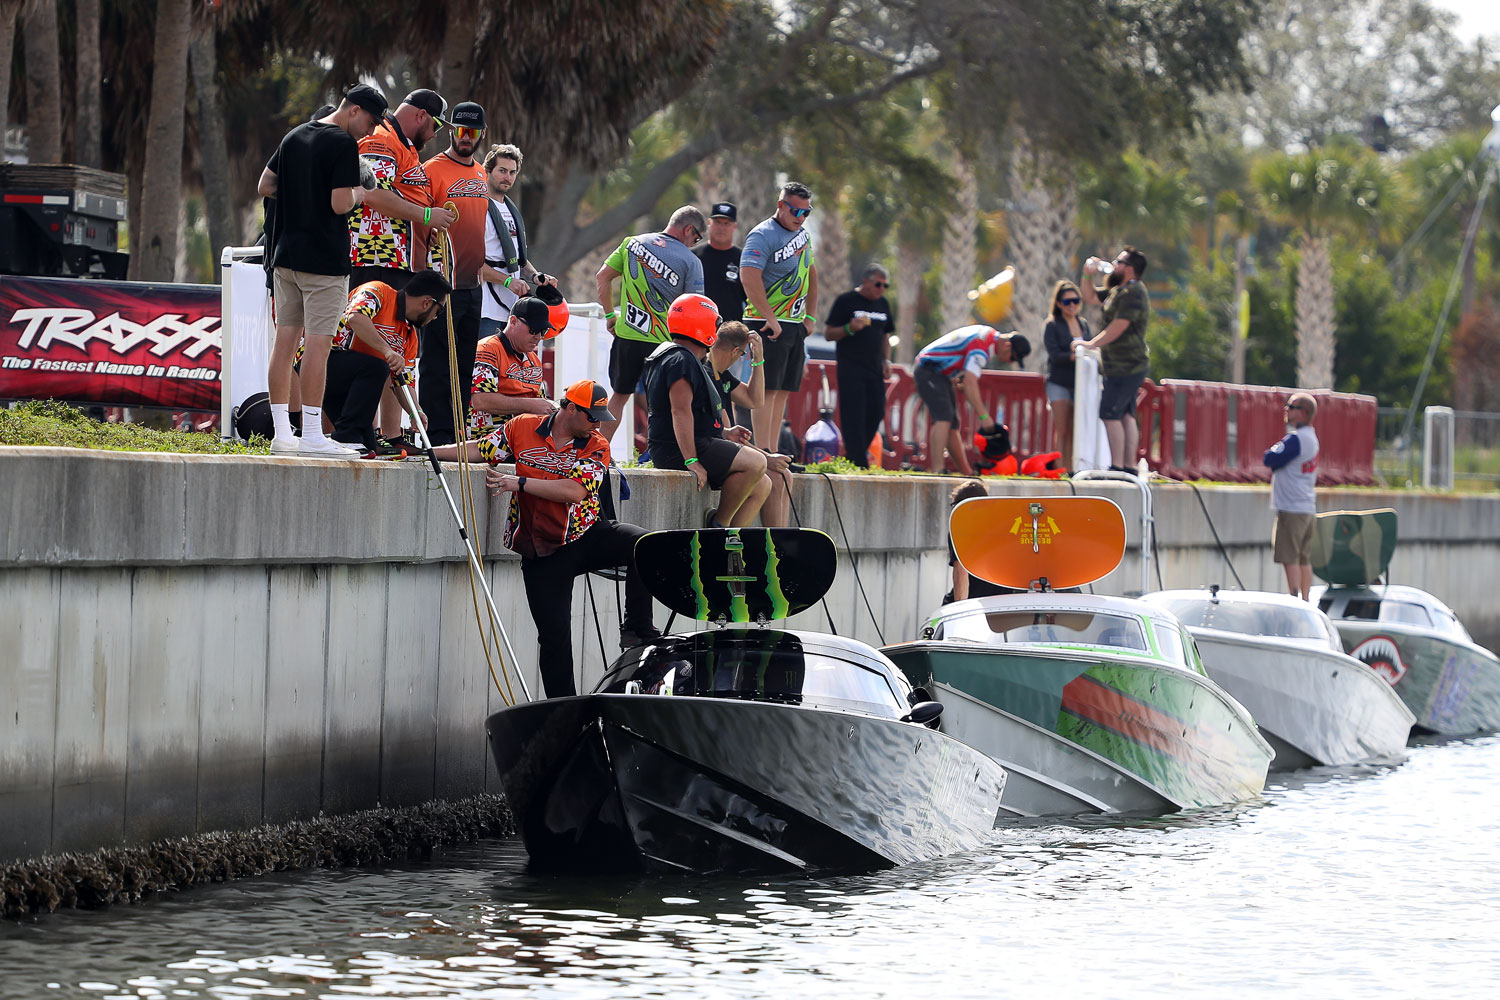 Travis Pastrana's P1 Powerboat Invitational presented by Traxxas